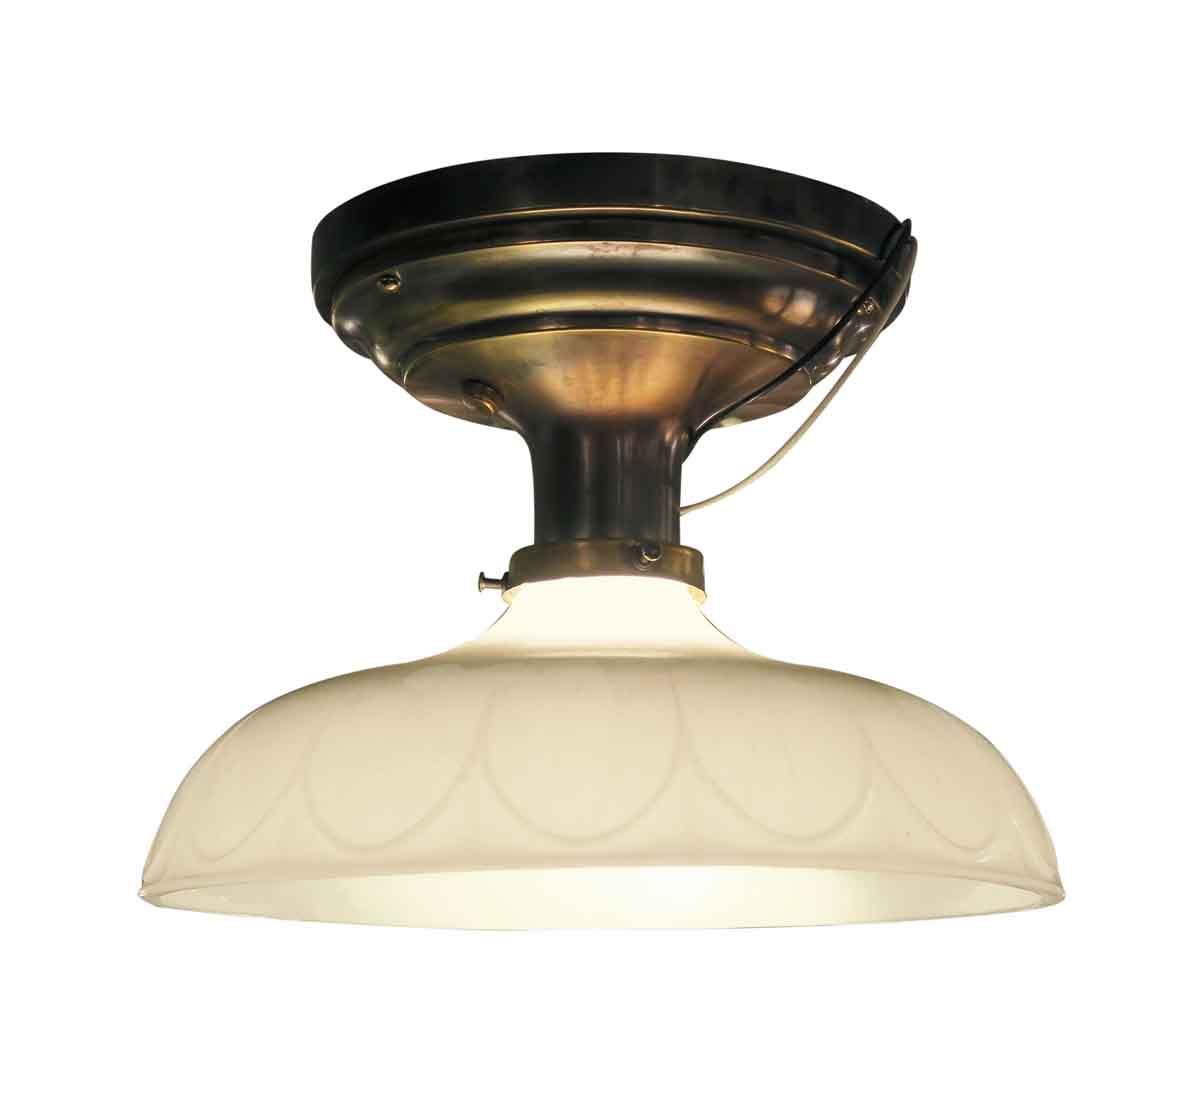 reputable site eecda f0584 Victorian Flush Mount Light with Antique Brass Canopy